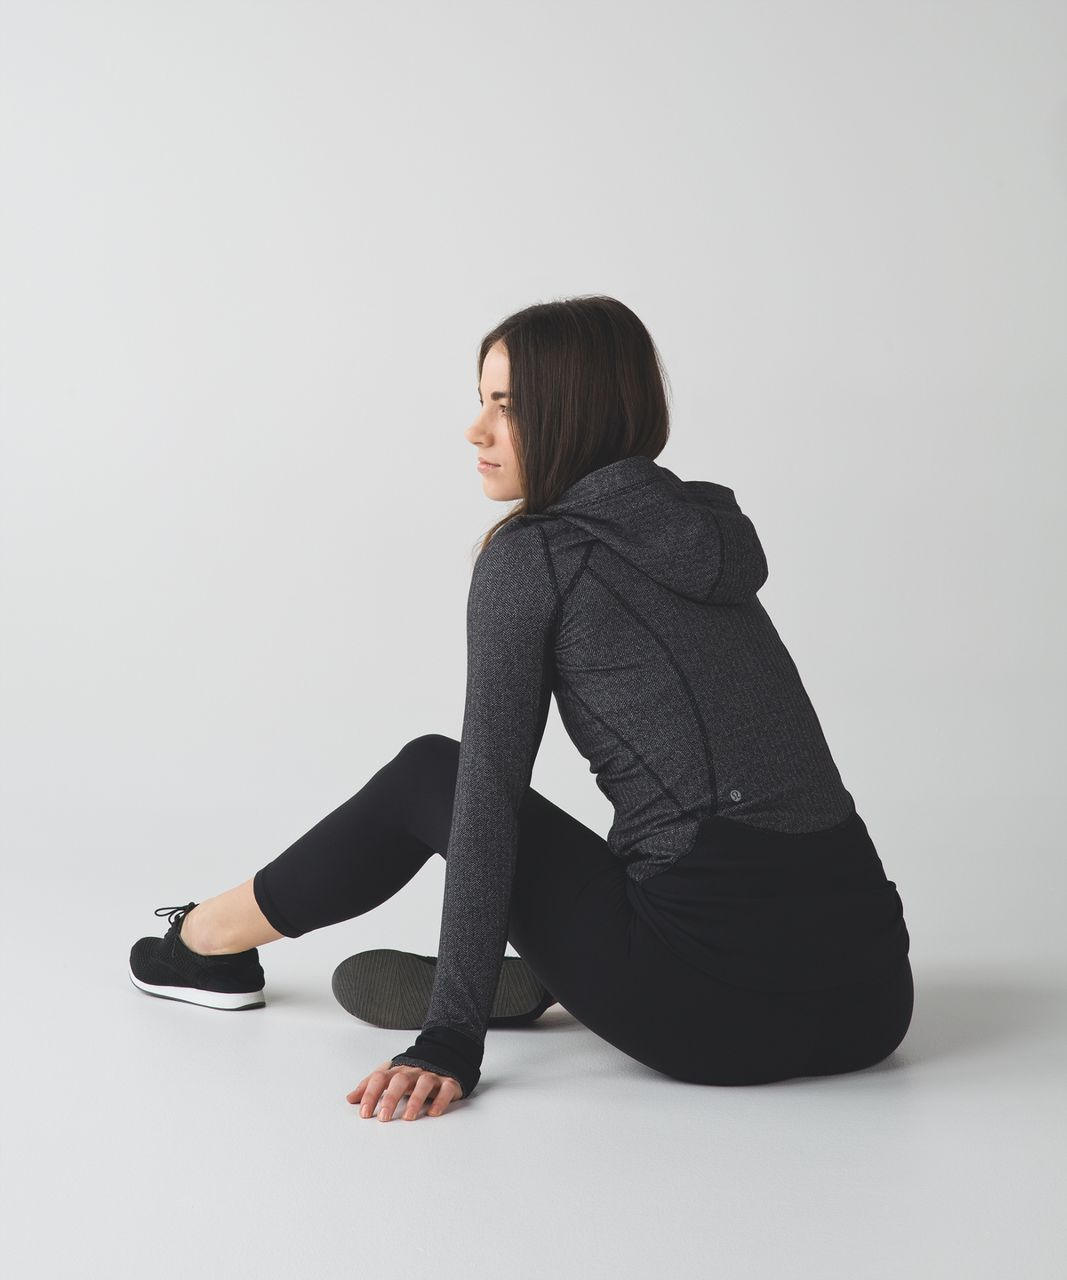 Lululemon Daily Practice Jacket - Heathered Herringbone Heathered Black Black / Black